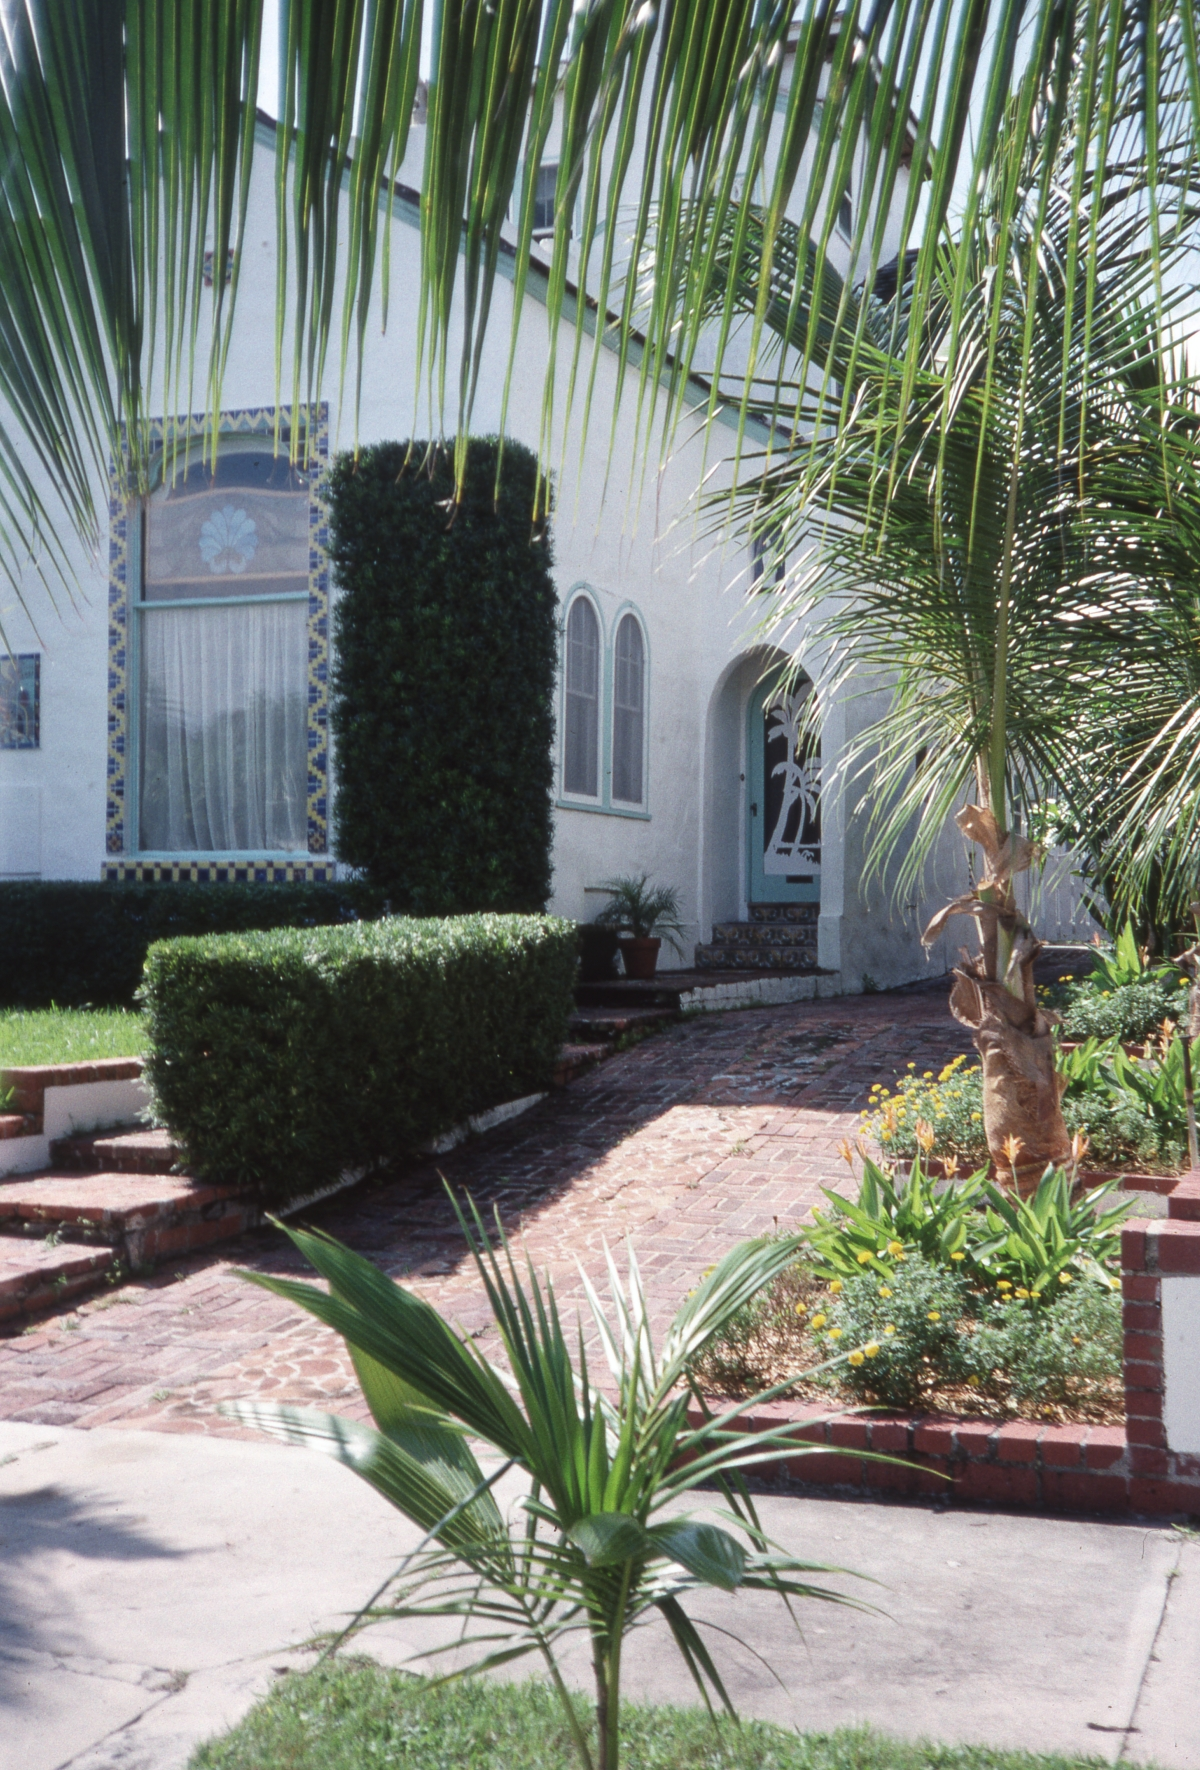 Photographs of the Clifton Rice House in West Palm Beach.